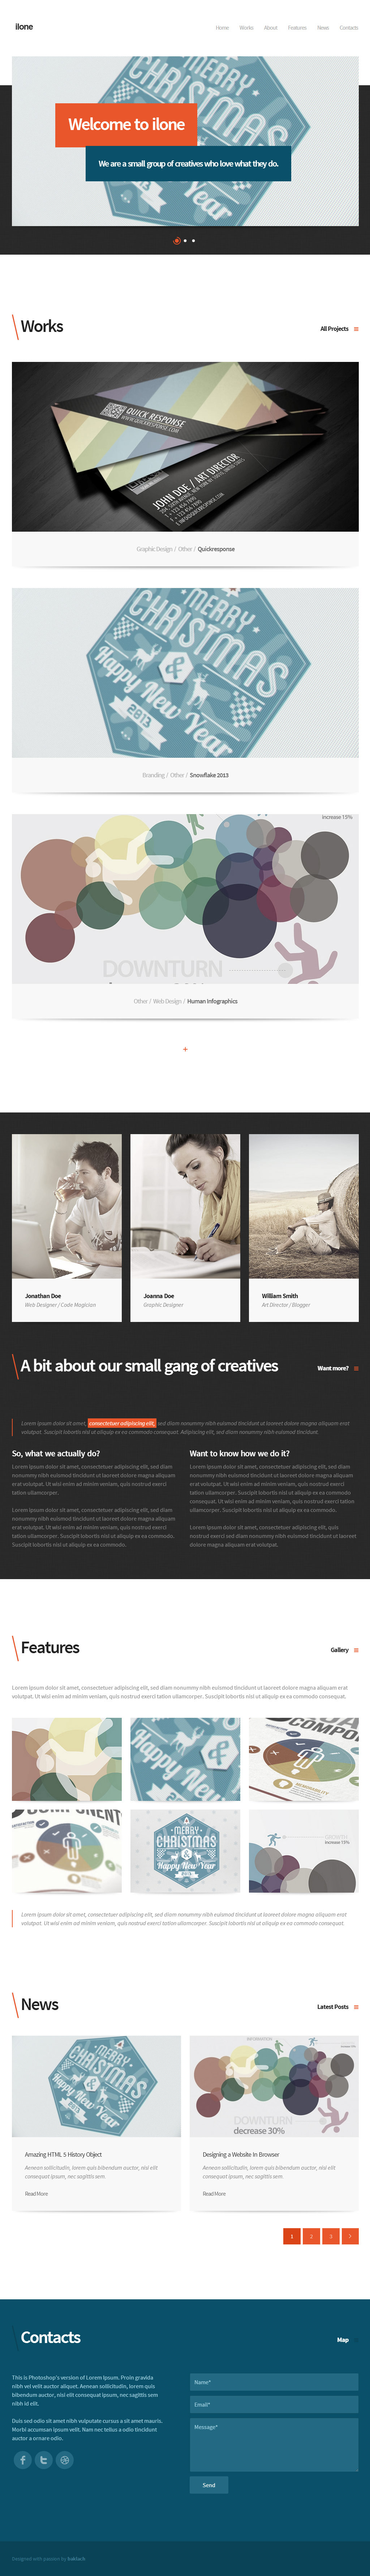 Ilone - One Page WordPress Theme - Screenshot 2. Home/Front page.